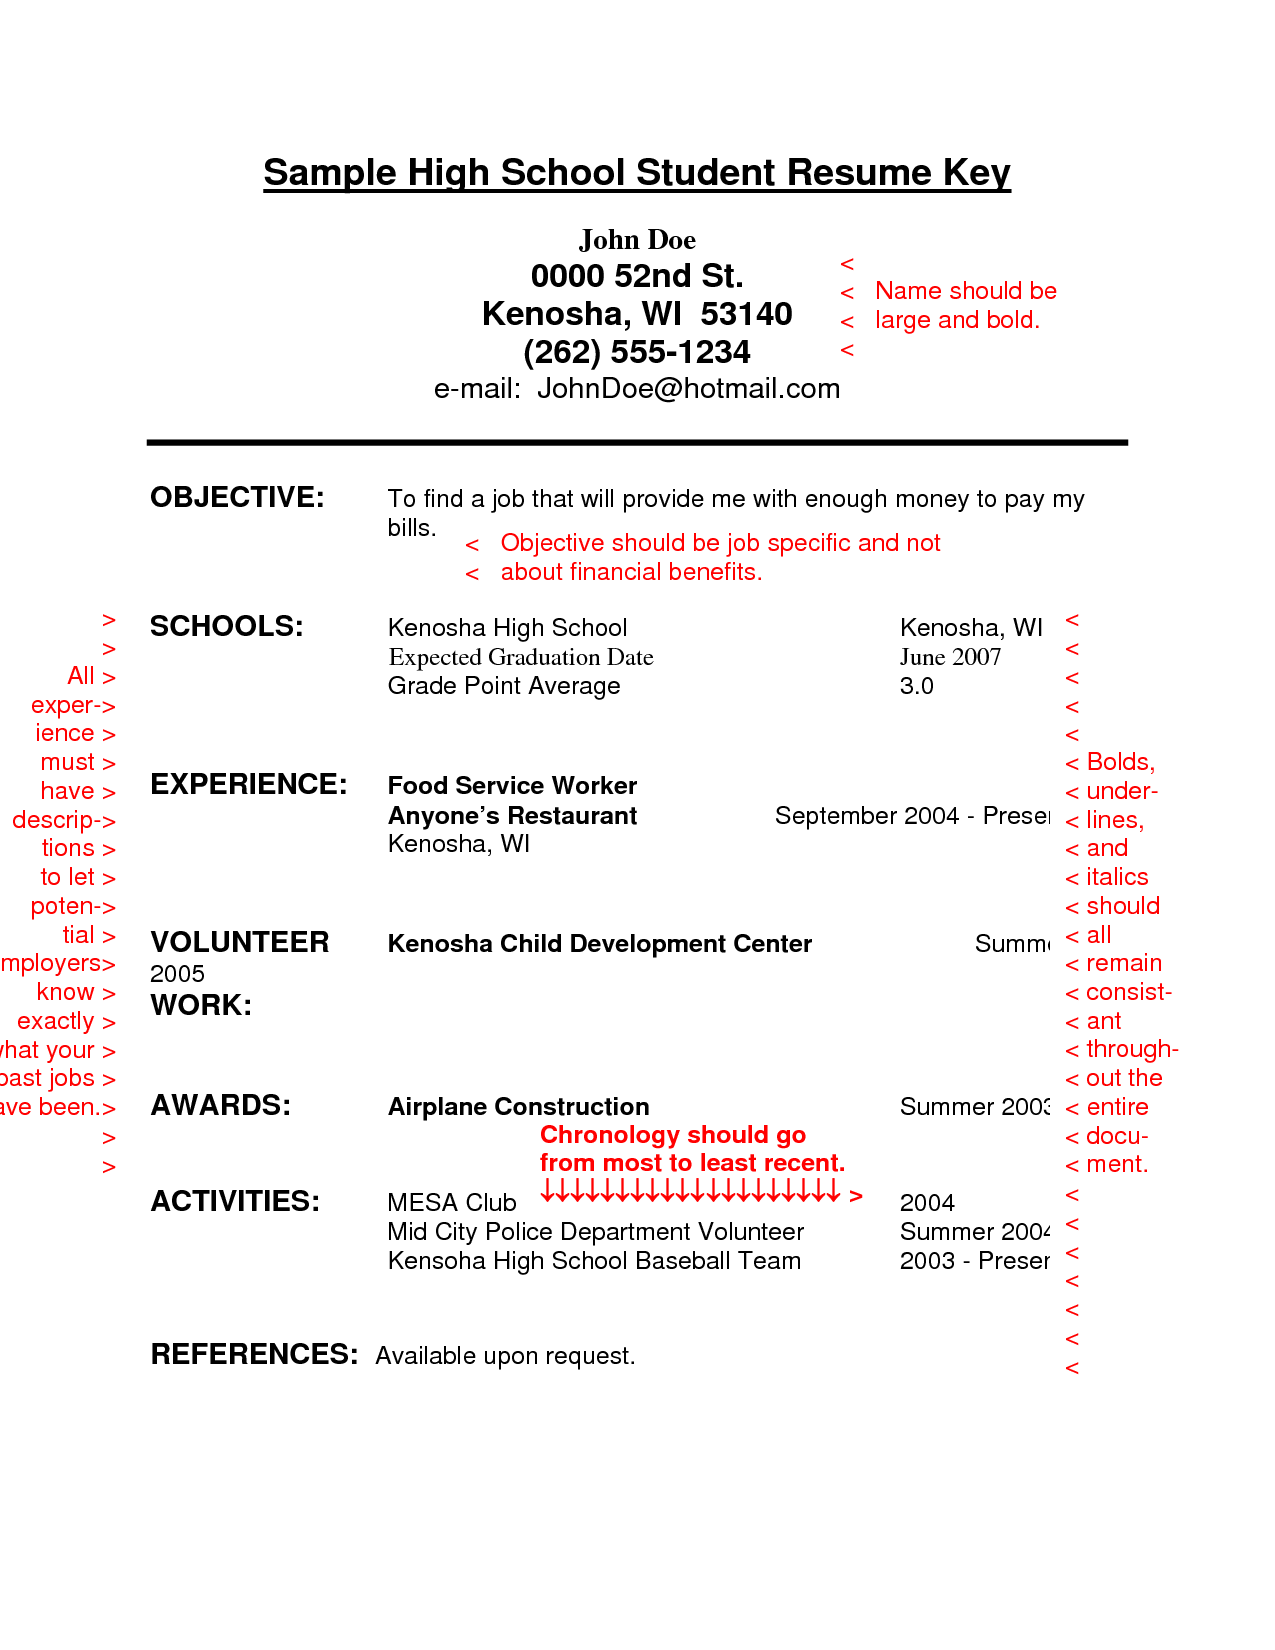 Resume sample for high school student goalblockety resume altavistaventures Gallery